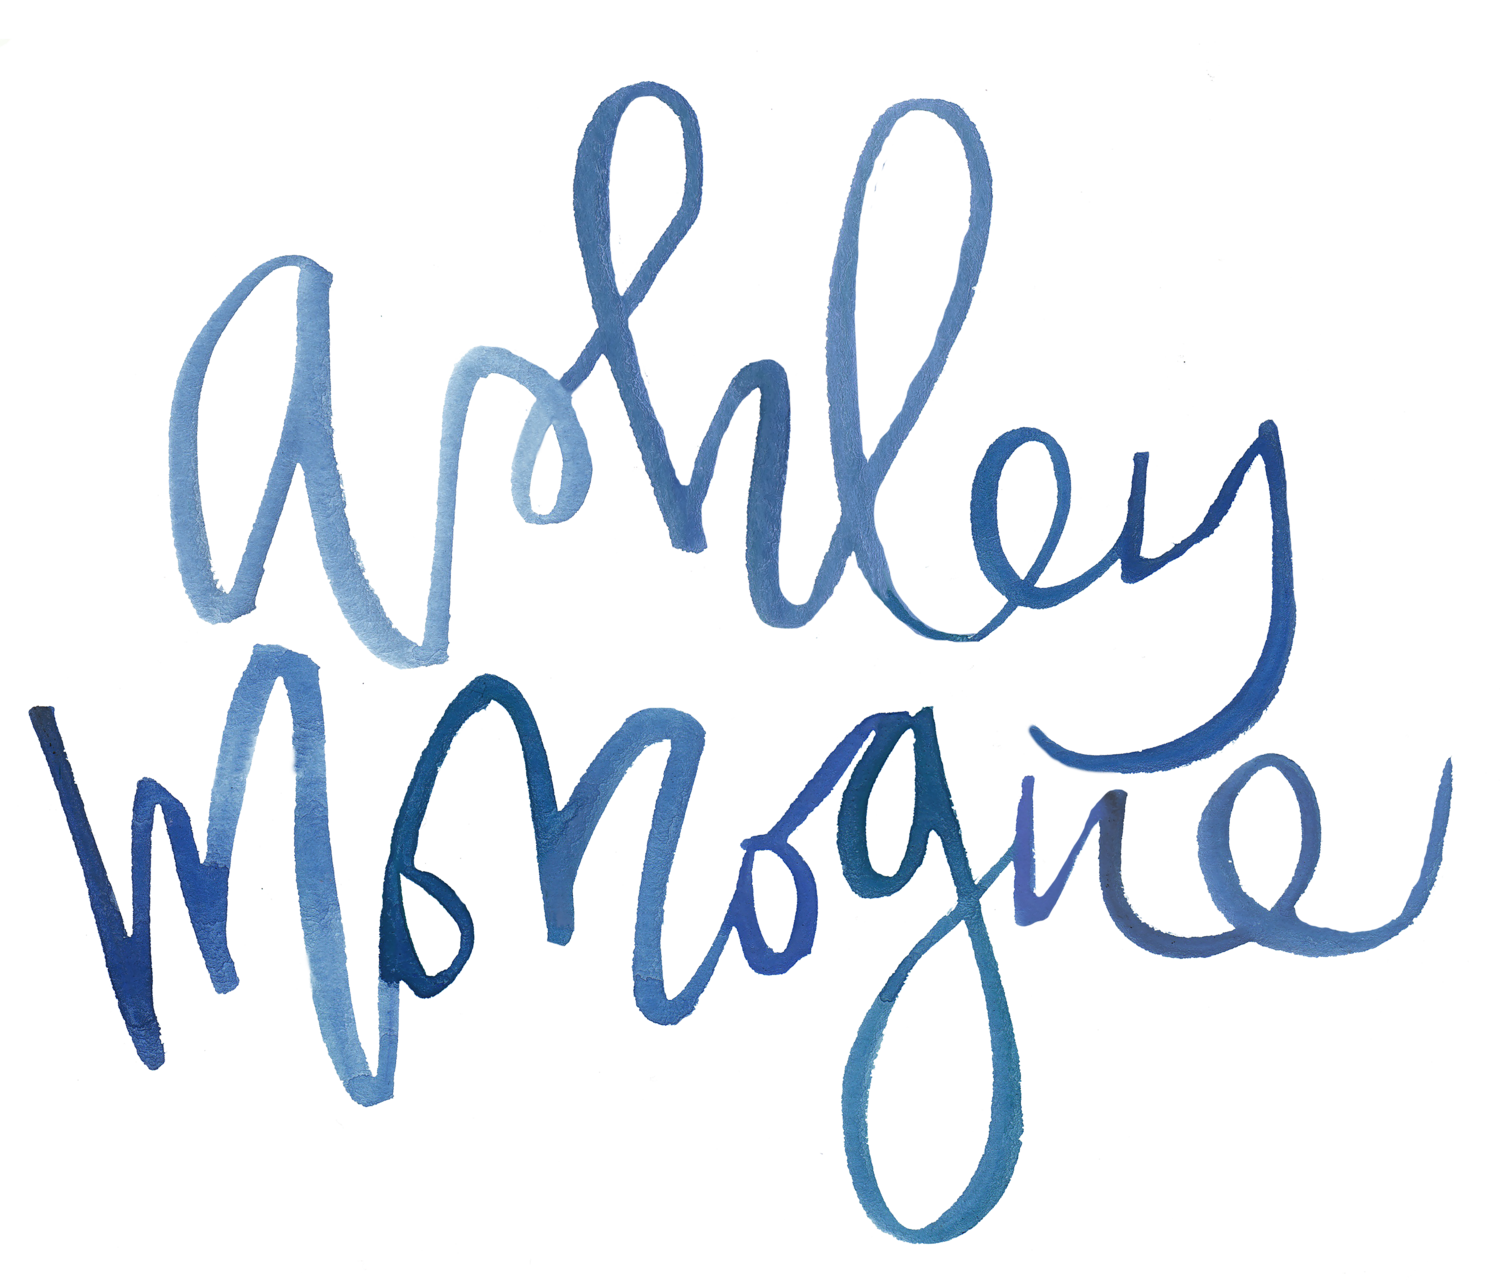 Ashley Monogue